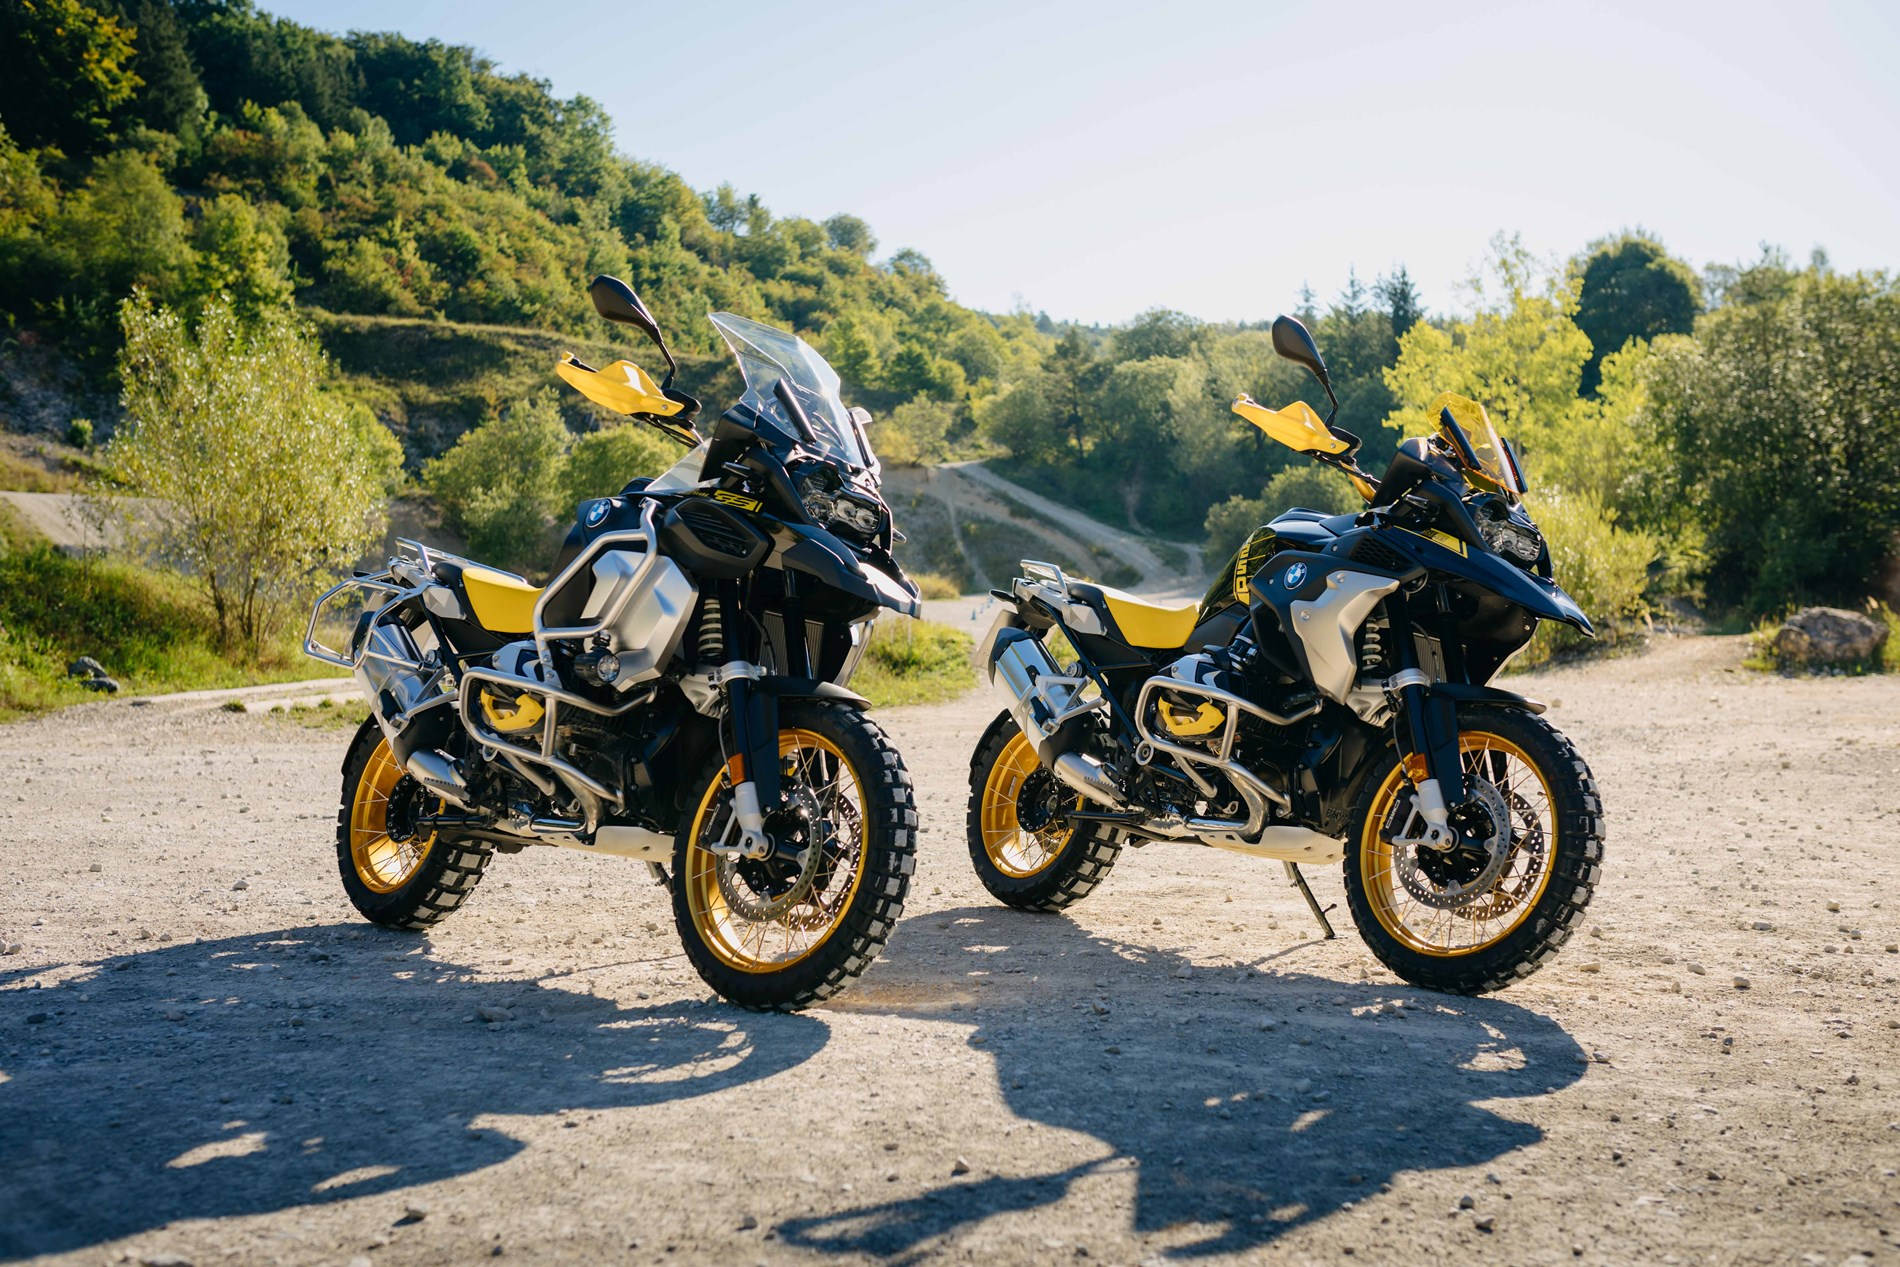 40 YEARS GS: SPECIAL EDITION